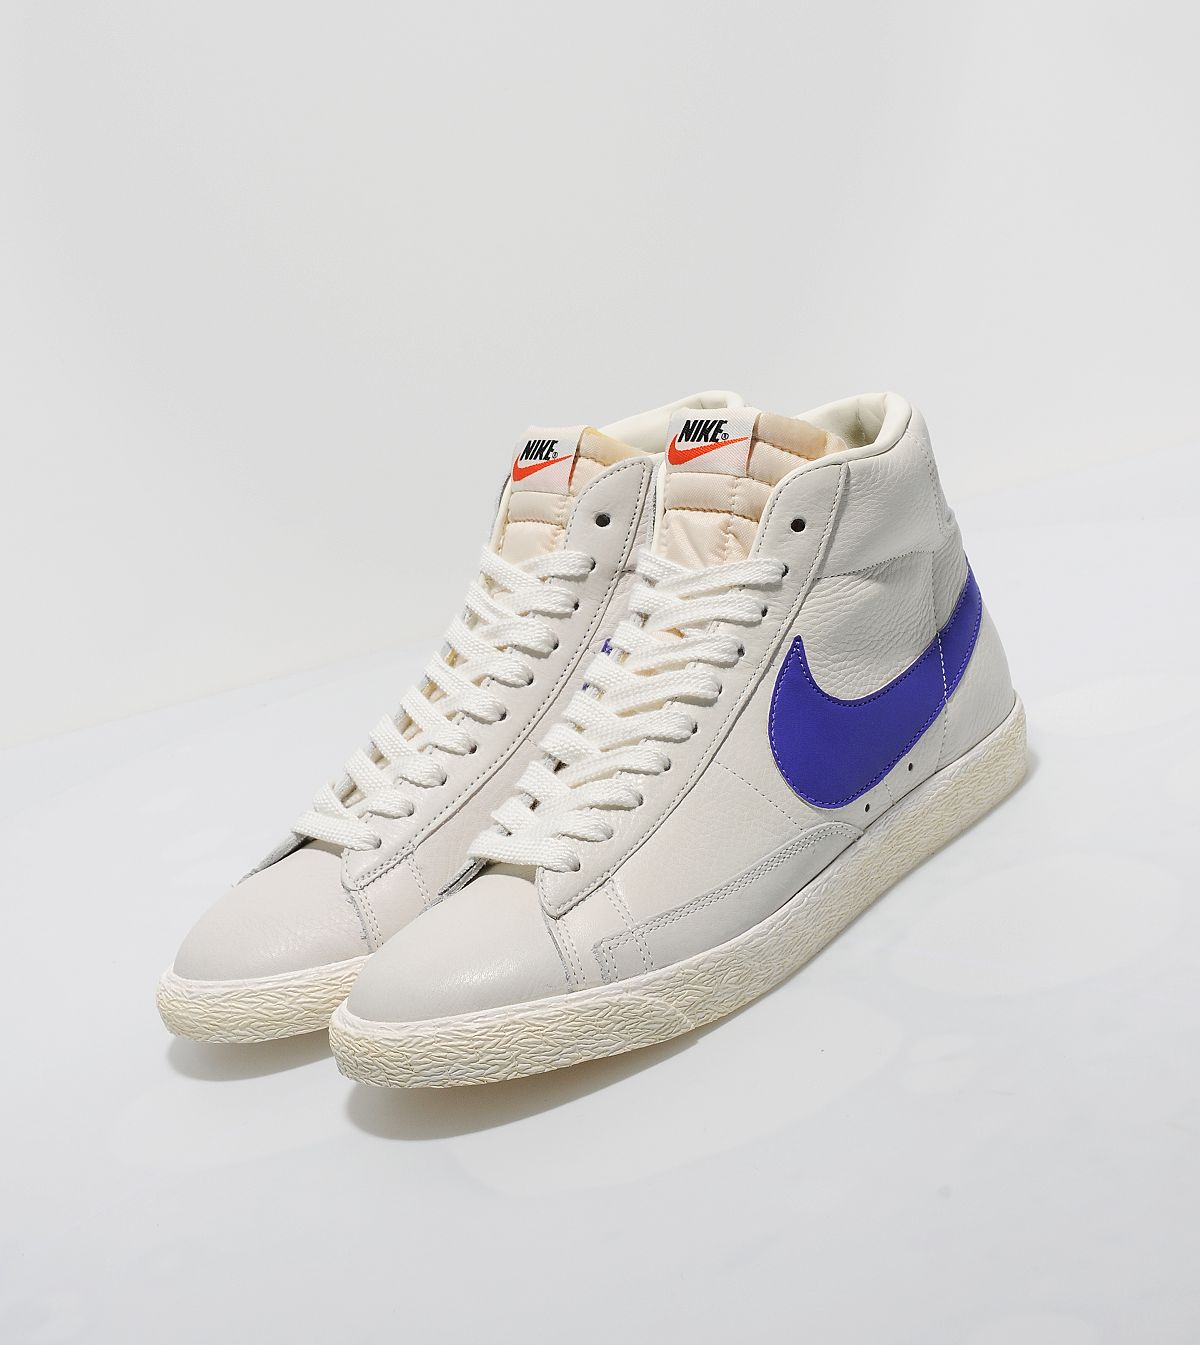 nike blazer vintage high tops